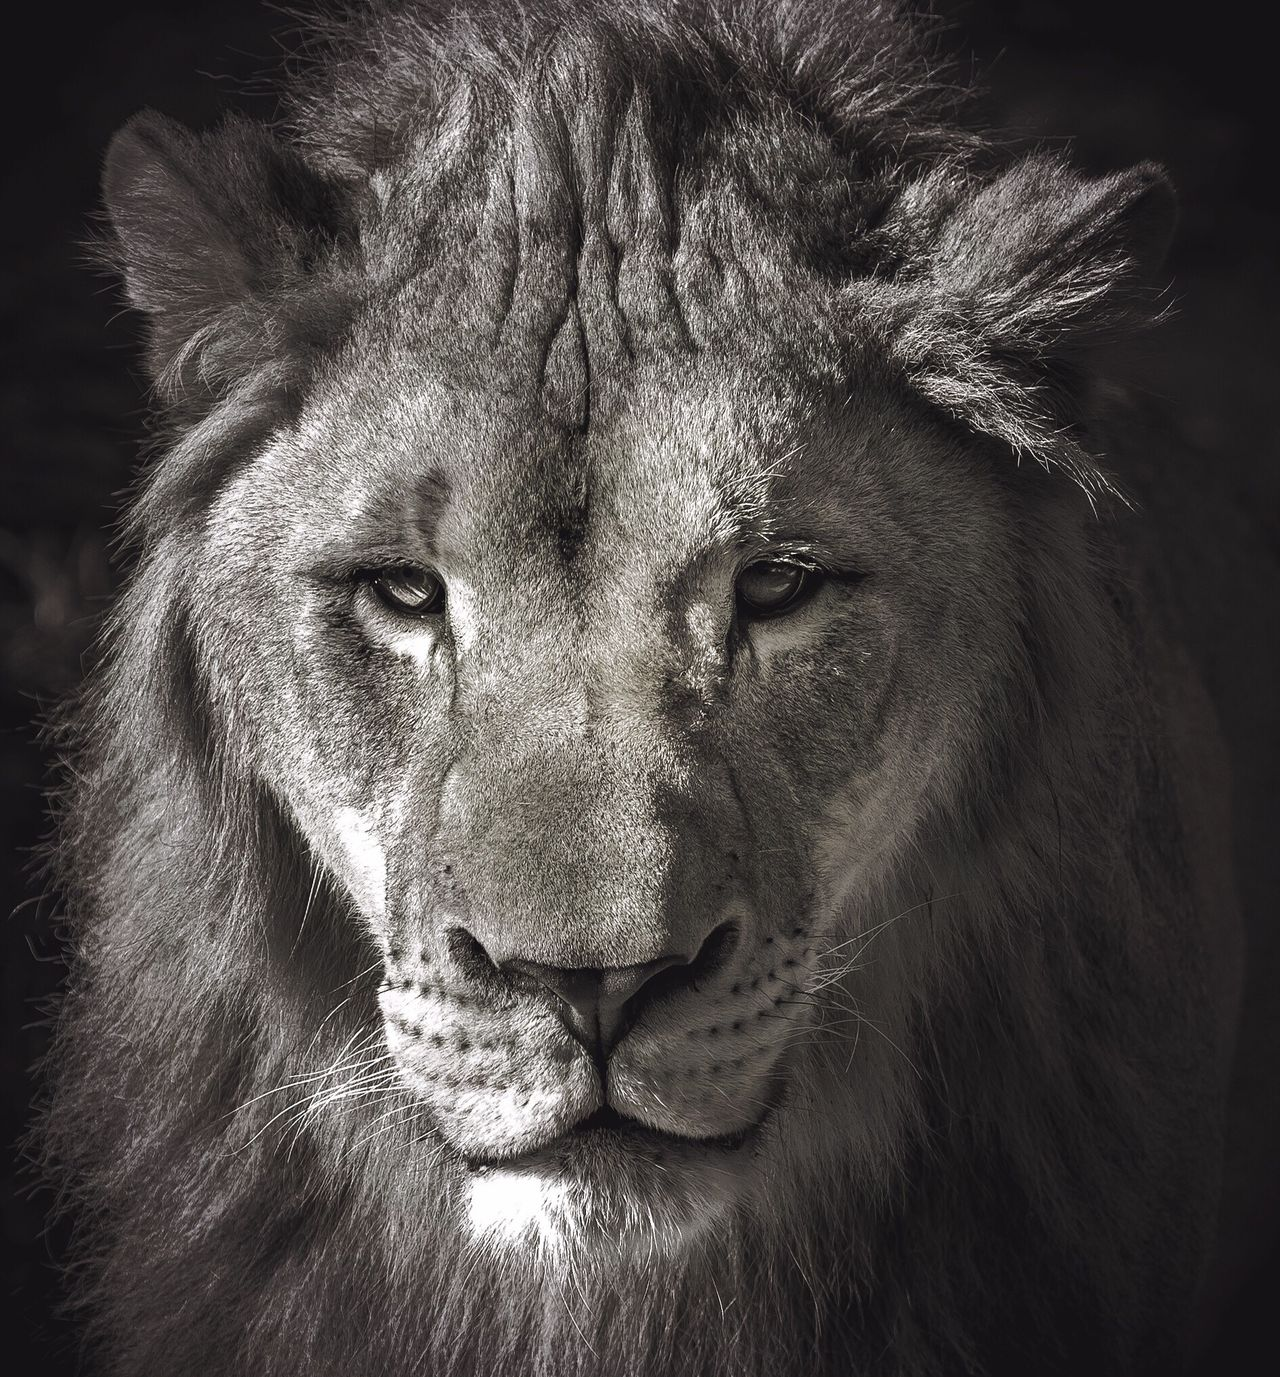 The King Animal Themes Animals In The Wild One Animal Lion - Feline Close-up Animal Head  No People Mammal Outdoors Portrait Day Blackandwhite Black And White Black & White Blackandwhite Photography Black And White Photography Black&white Portraits Portrait Photography Africa Safari